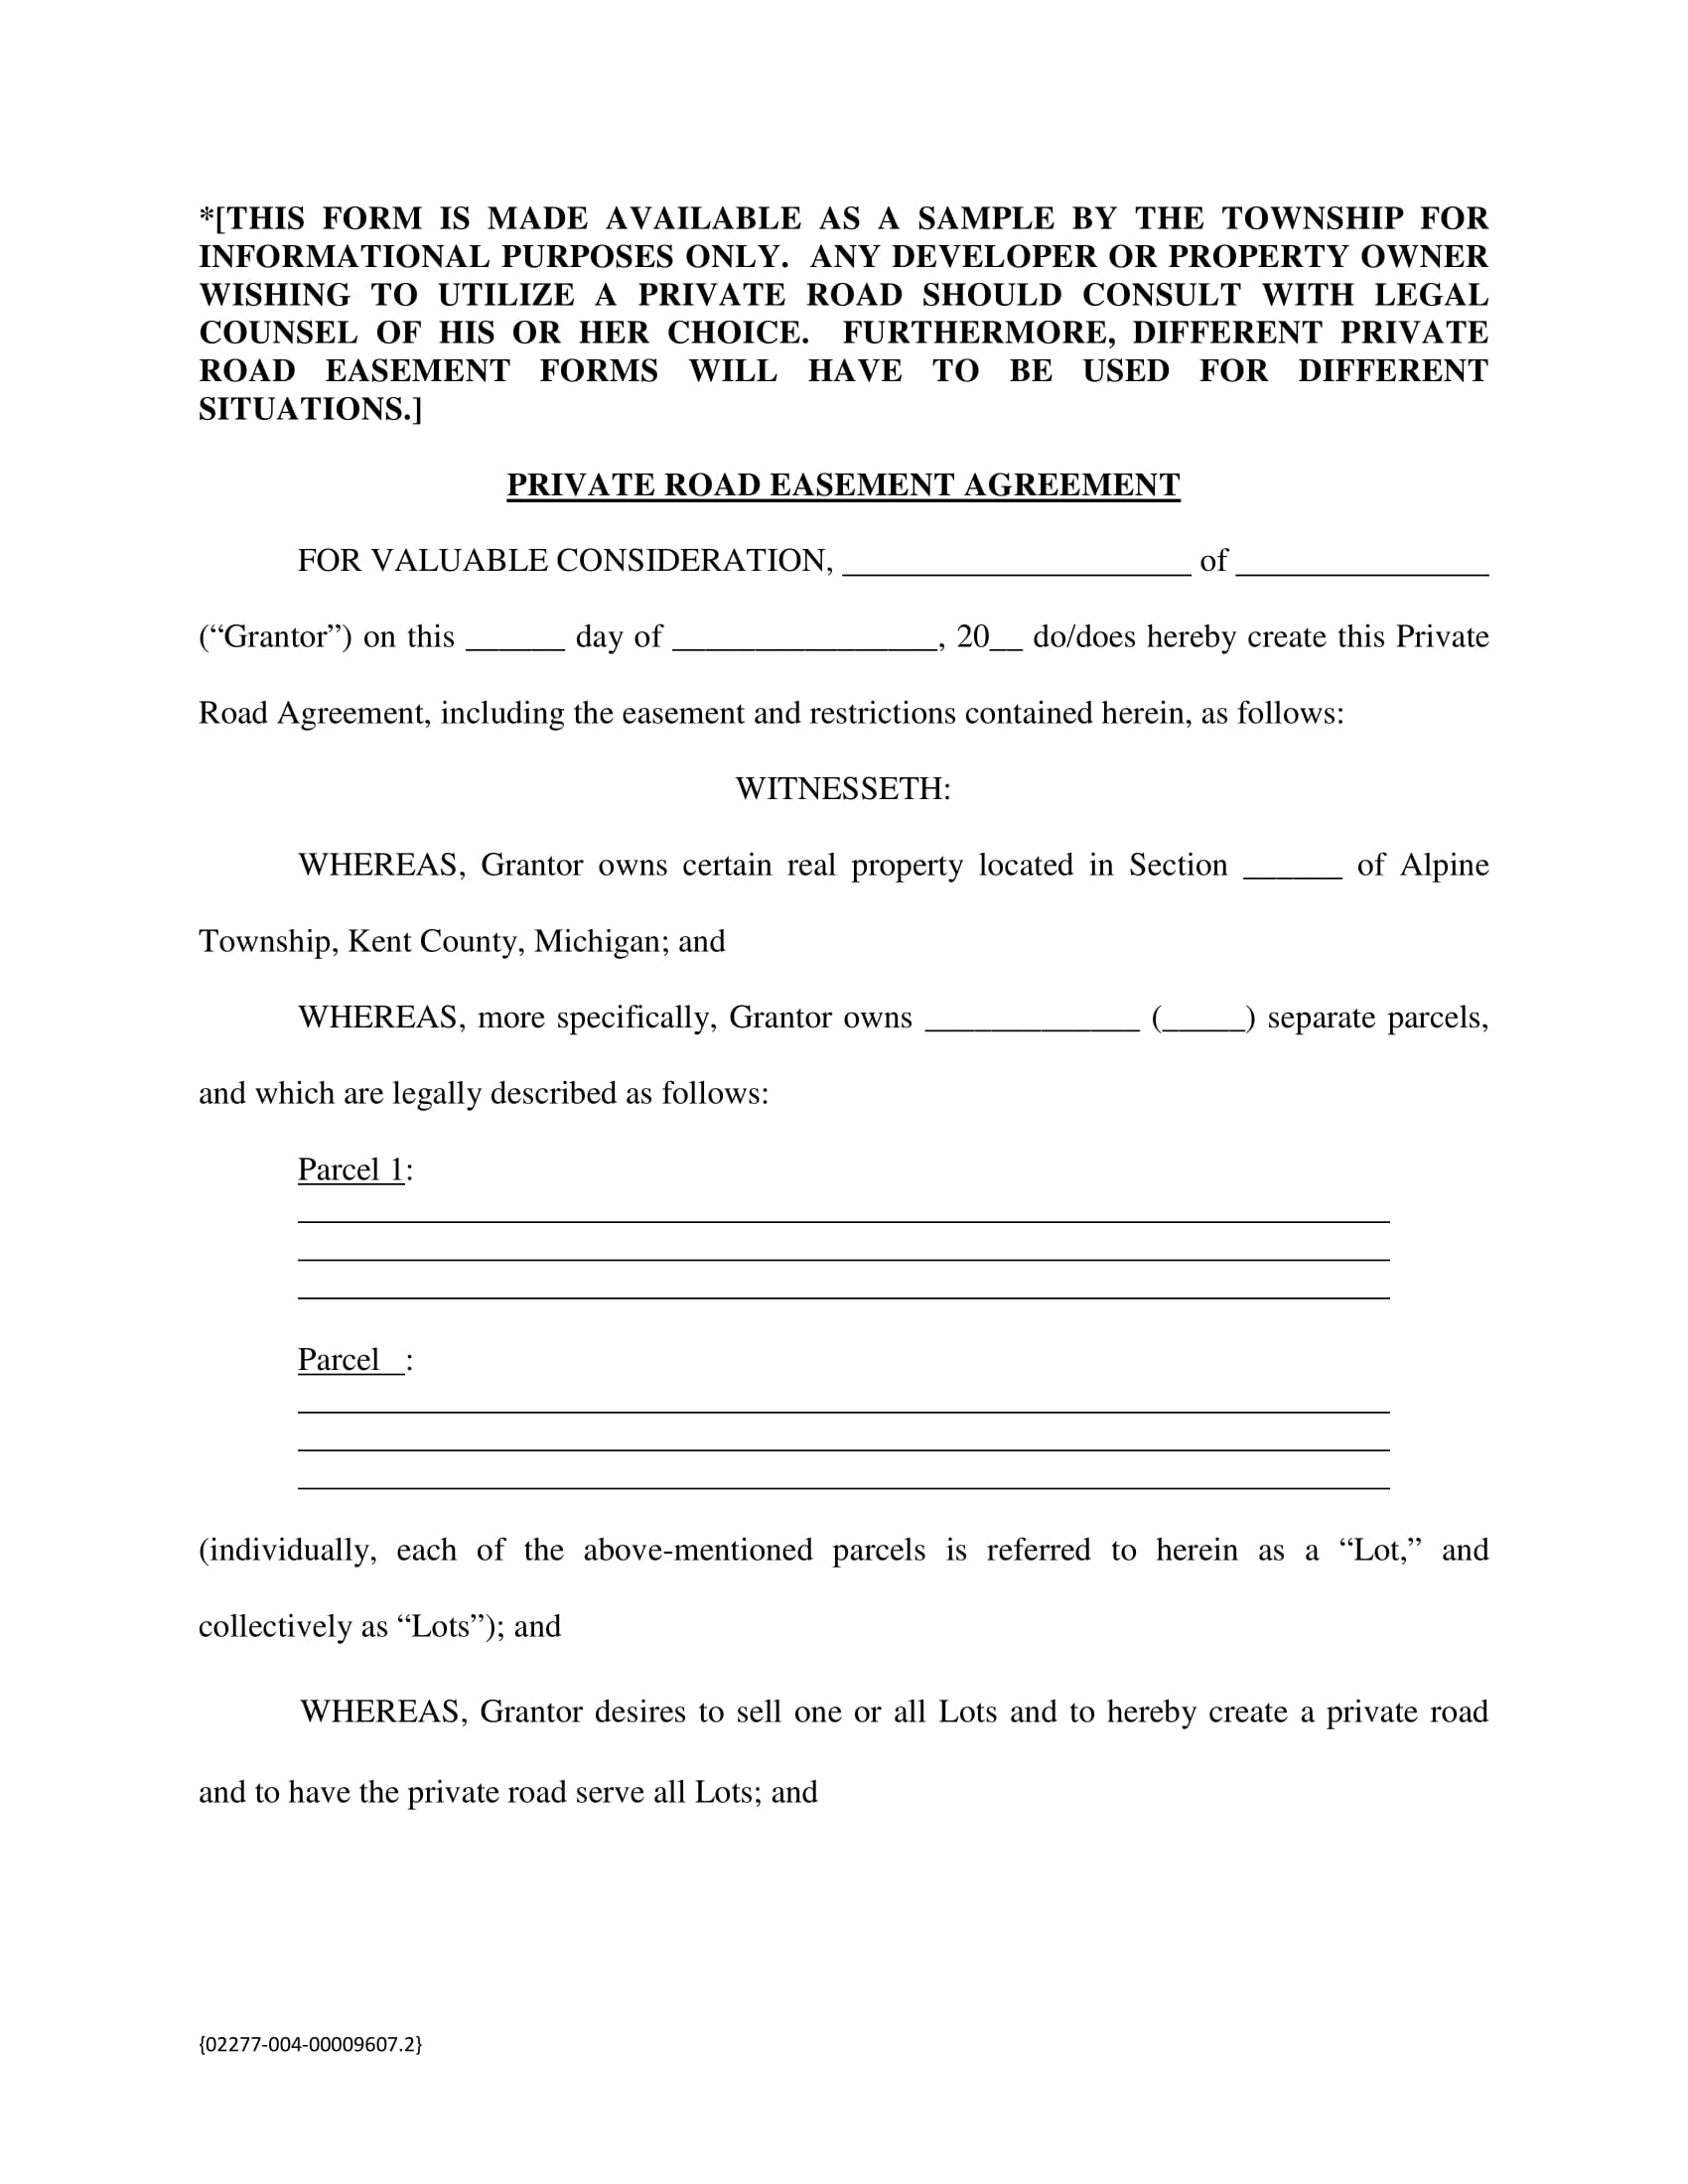 private road easement agreement contract form 1